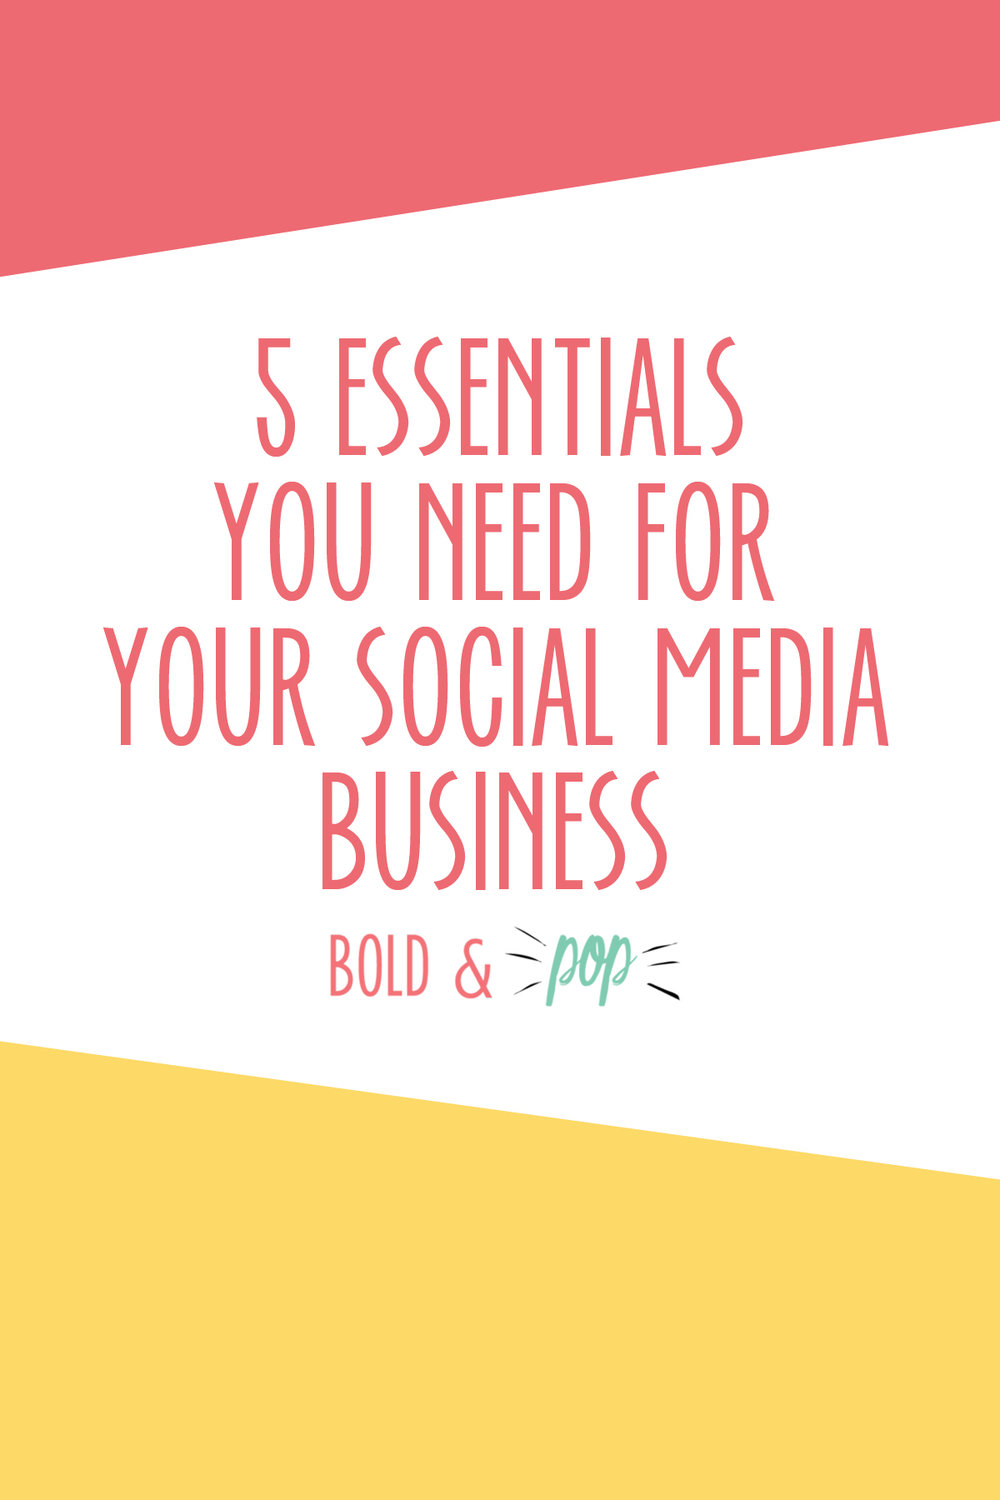 Bold & Pop : 5 Essentials You Need for your Social Media Business